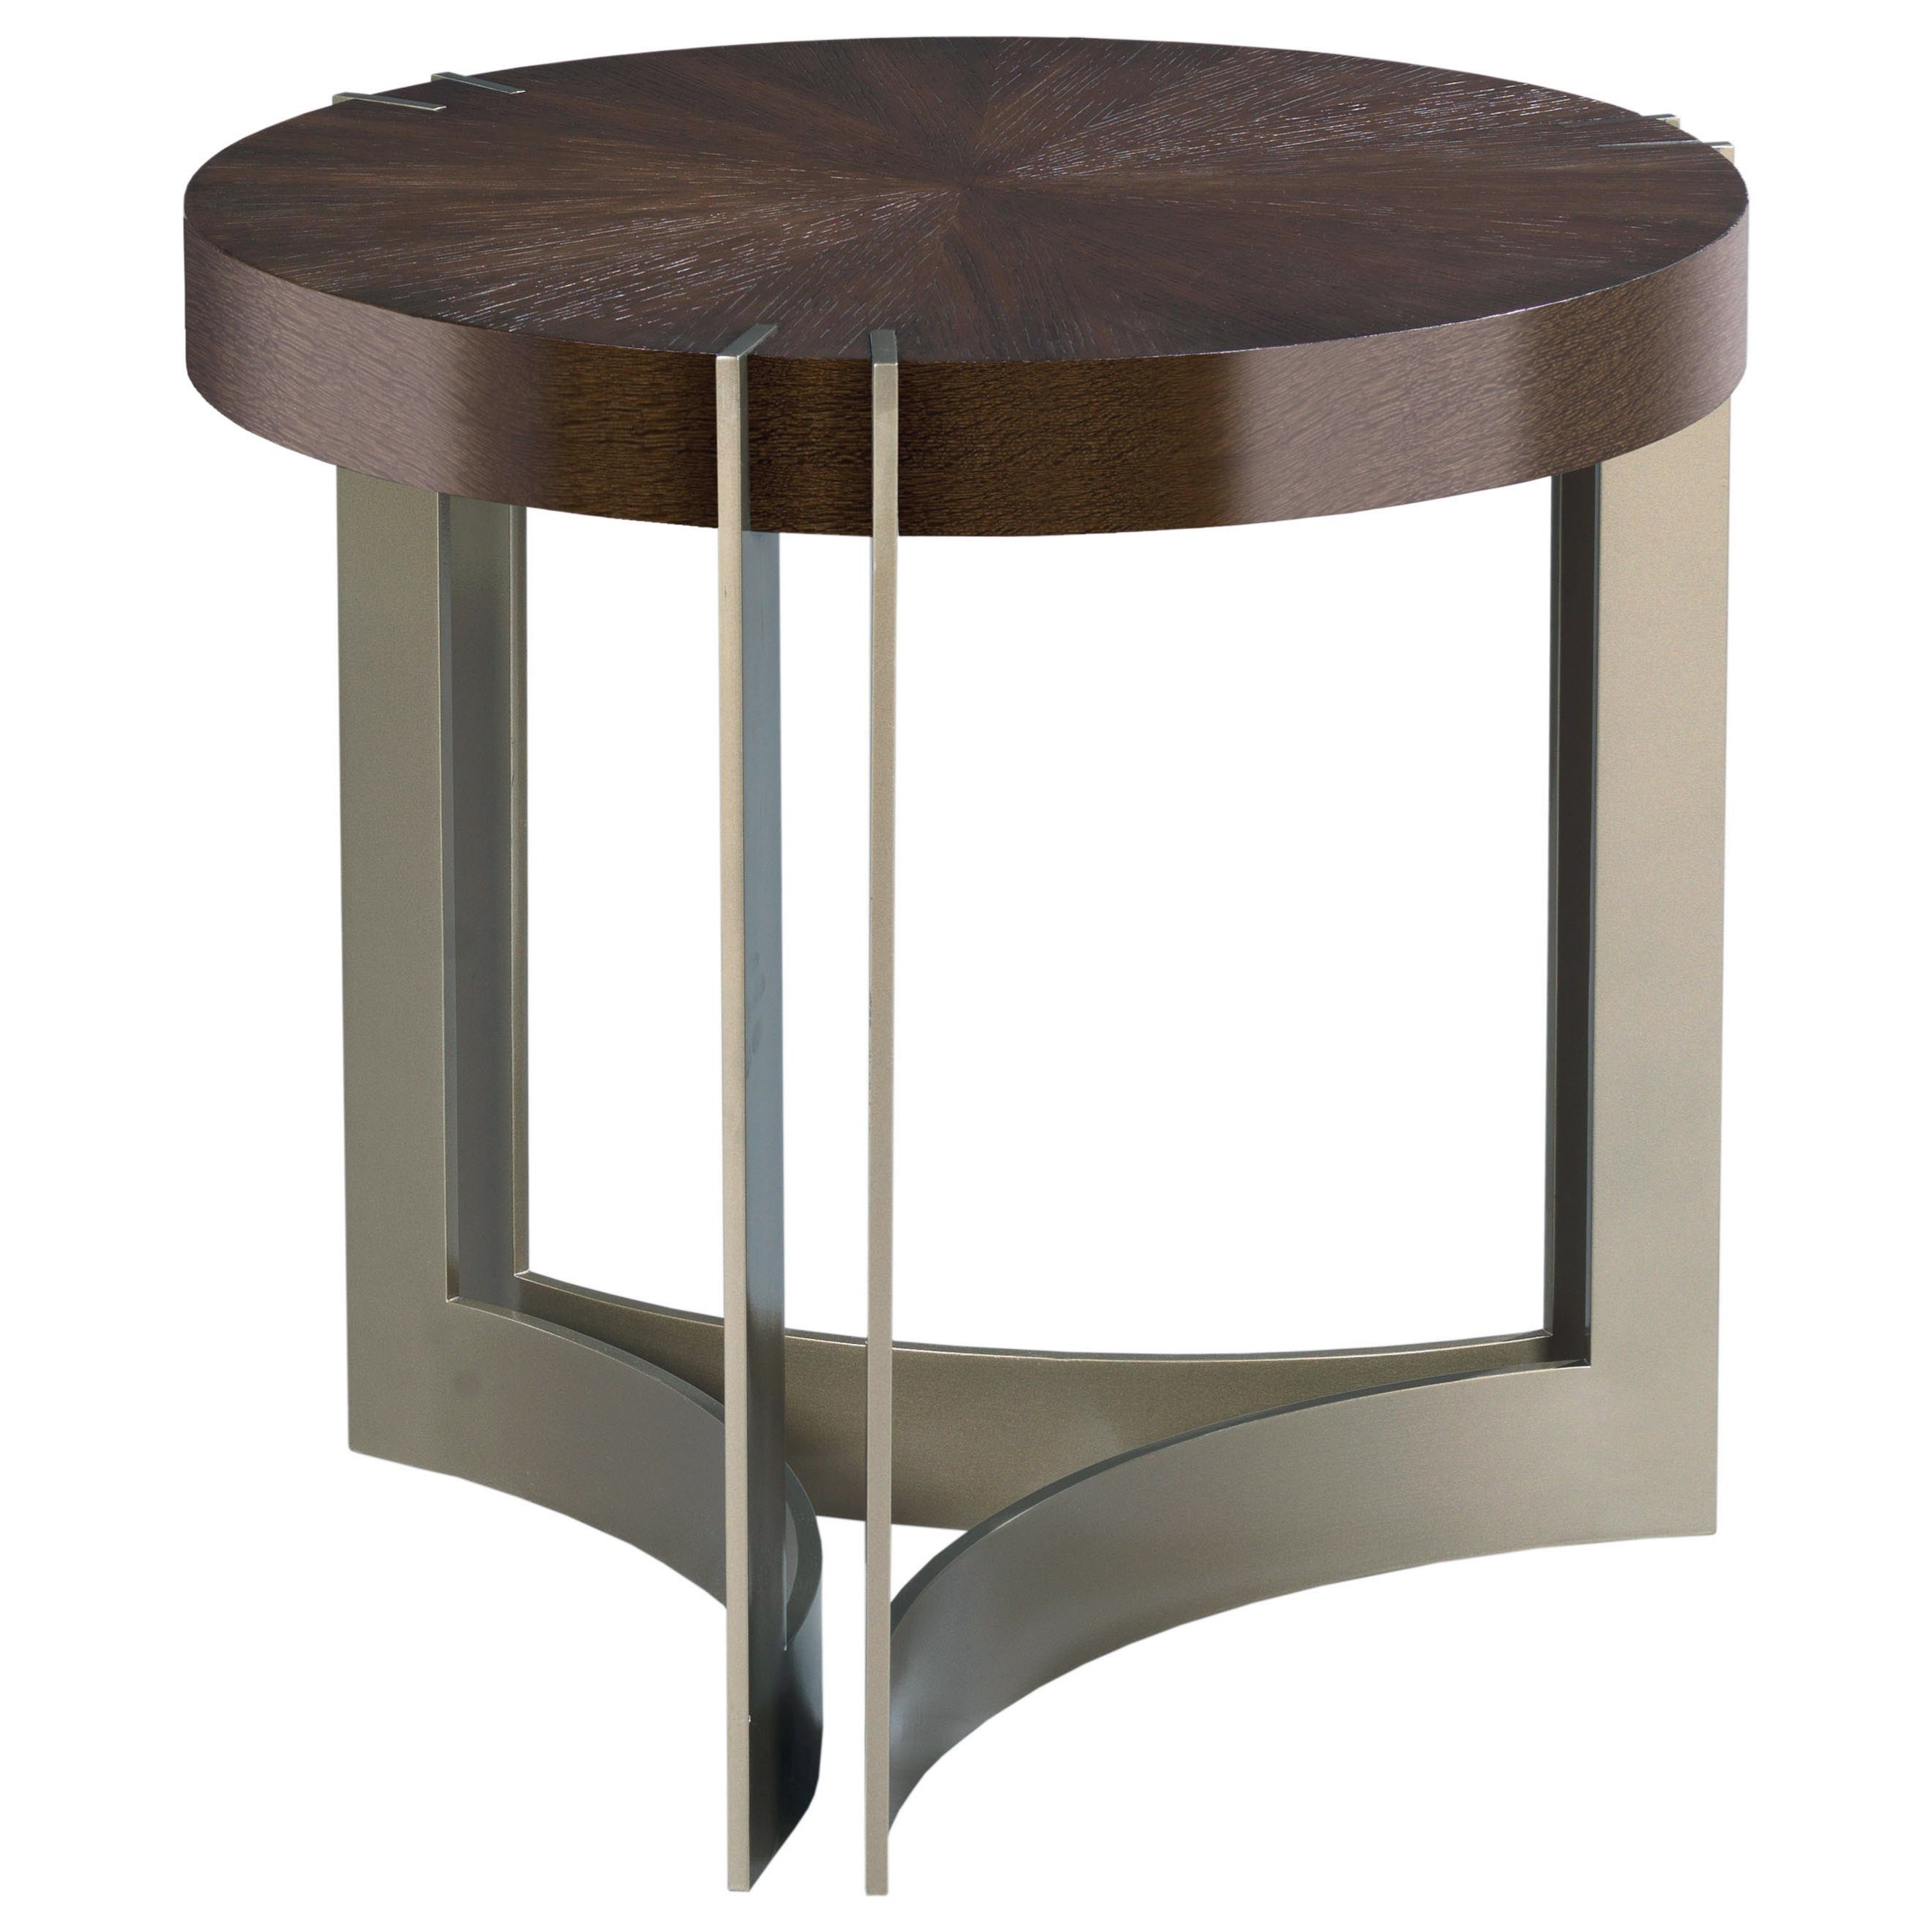 Ad Modern Classics Kent Lamp Table by Living Trends at Sprintz Furniture